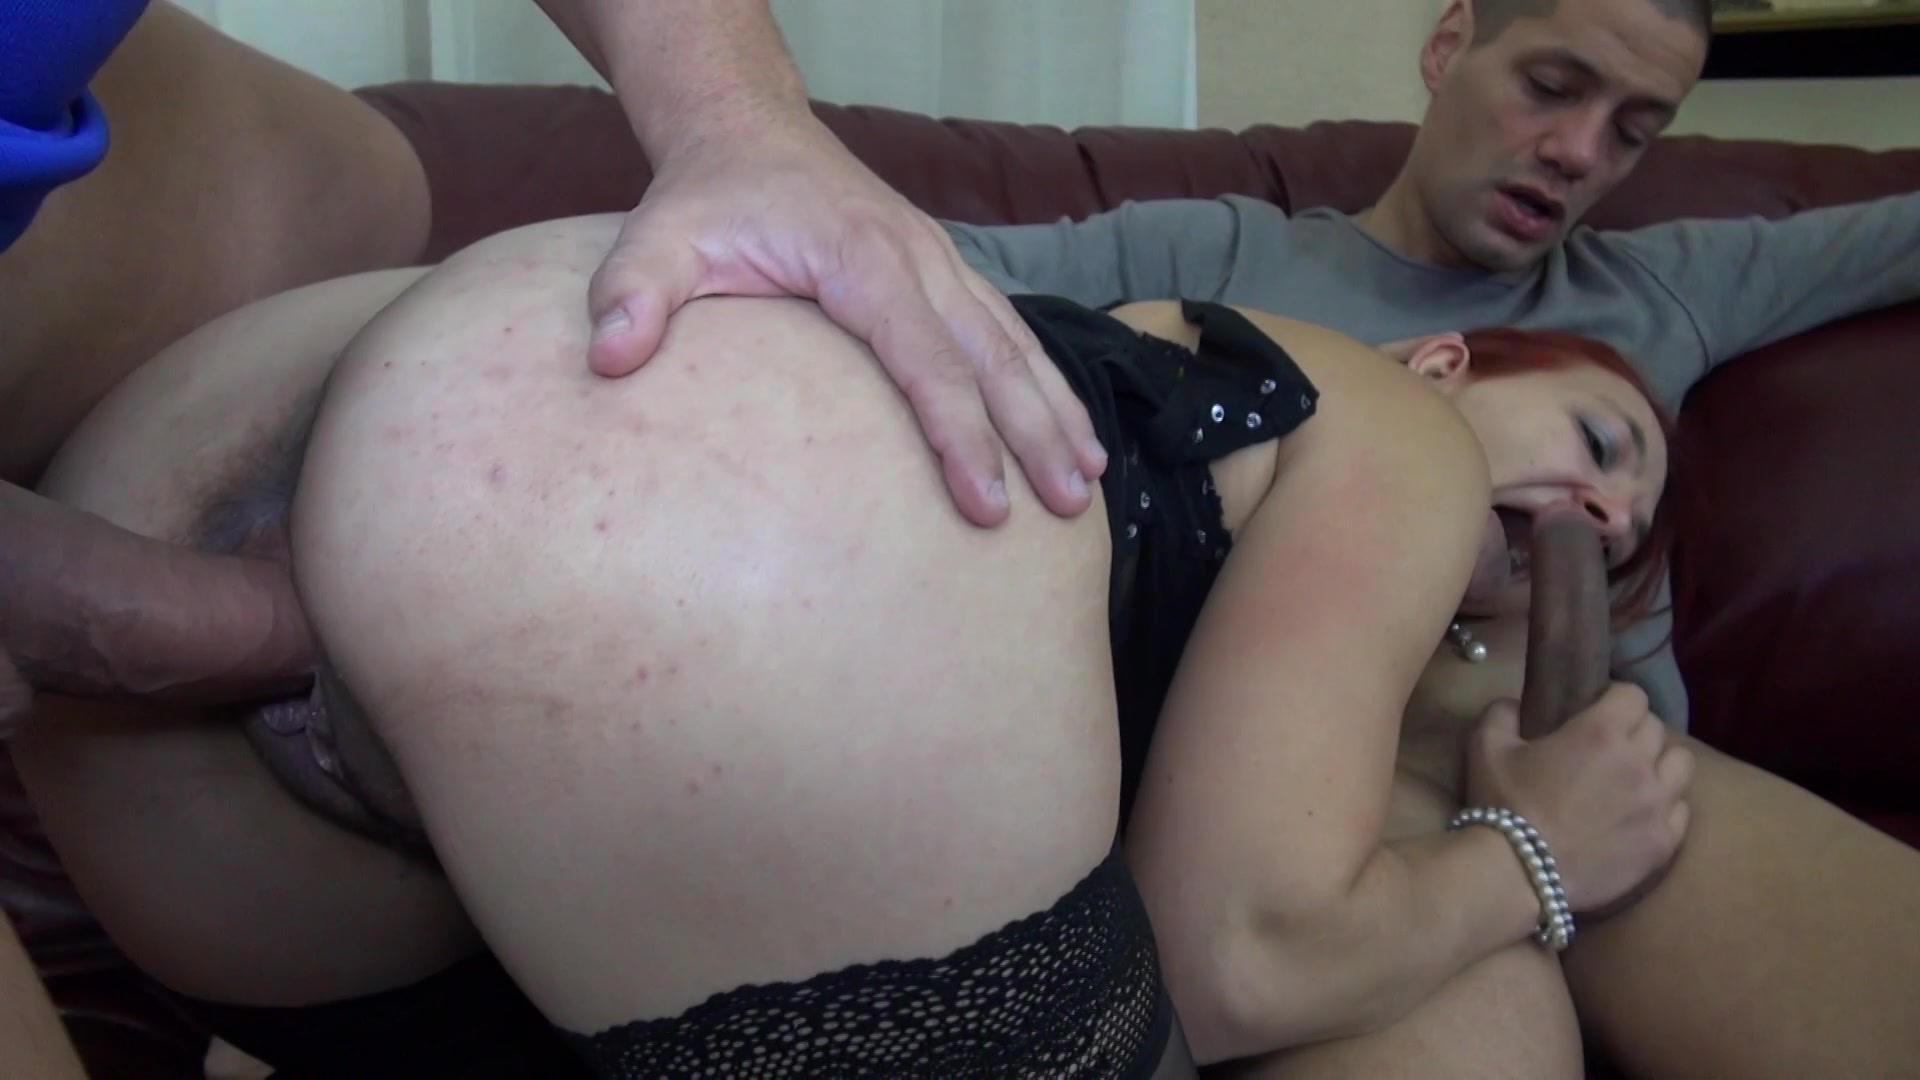 2 Cocks In 1 1 butt for 2 dicks | abricot production | sugarinstant